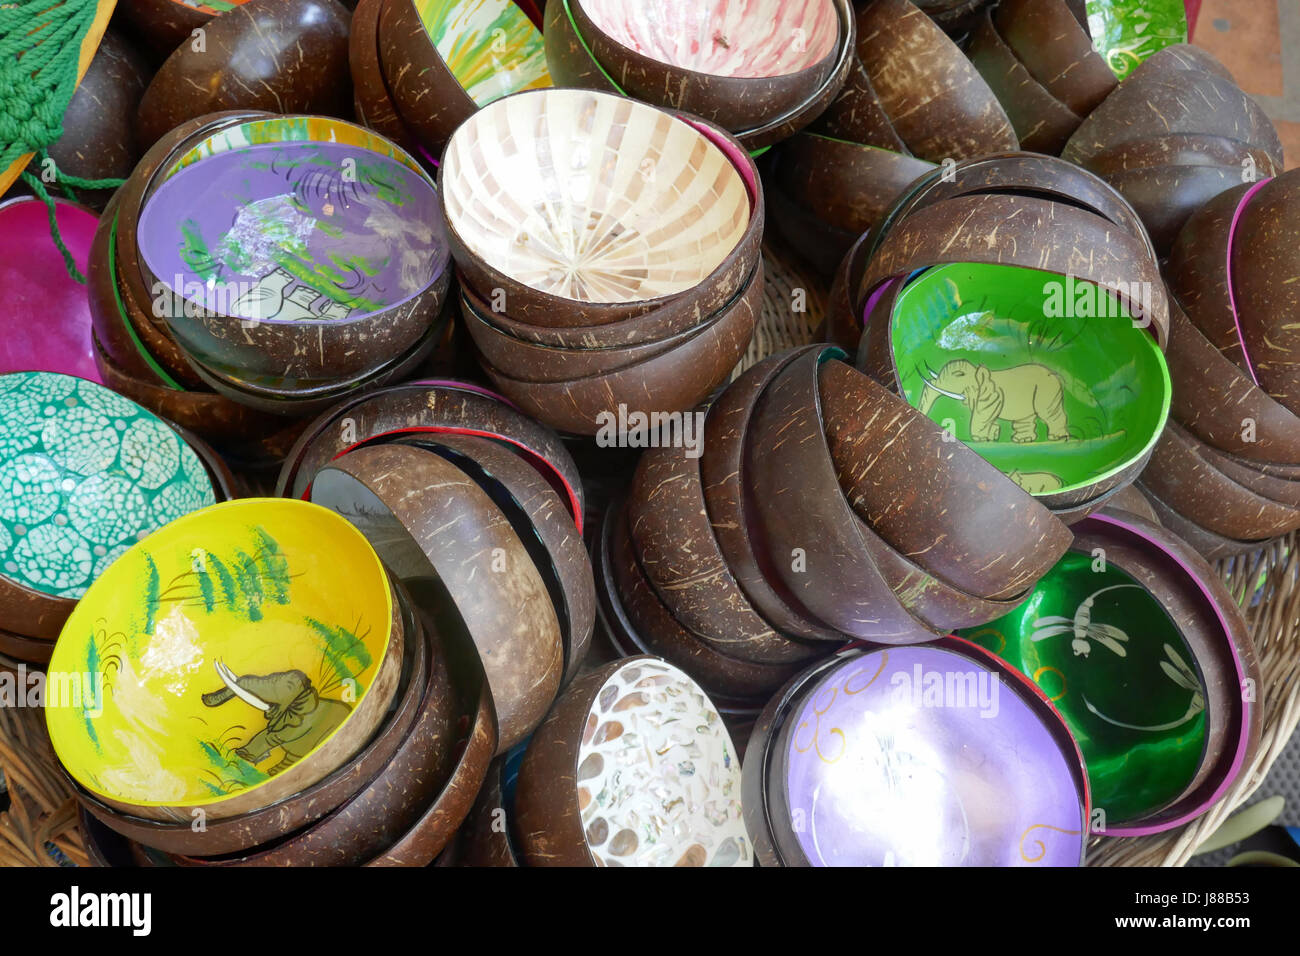 Little bowls on sale at Siem Reap, Cambodia - Stock Image